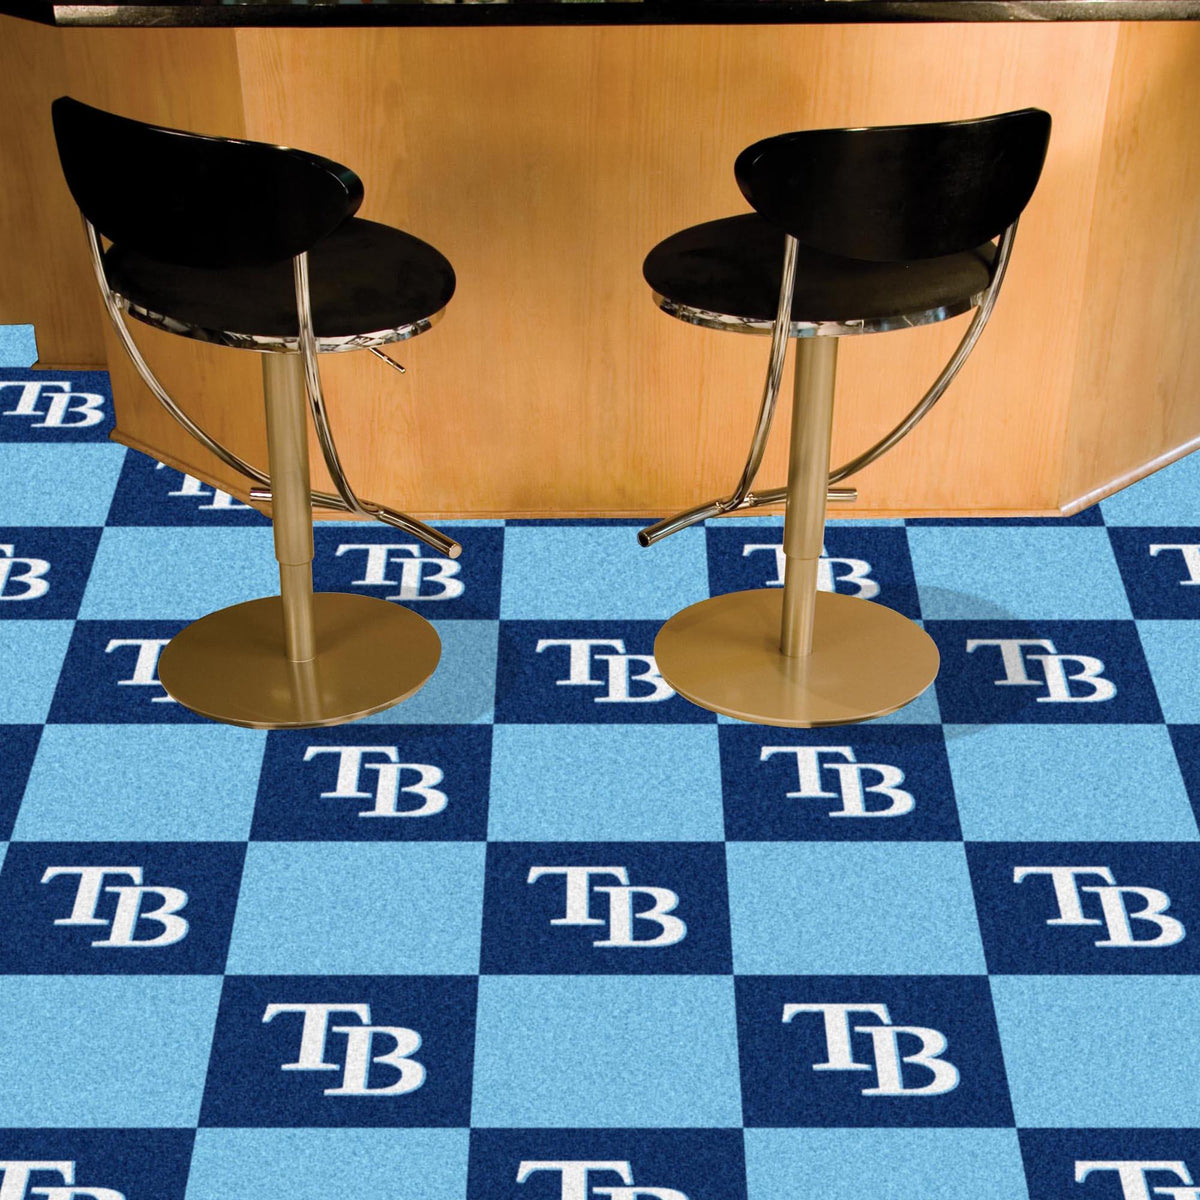 MLB - Team Carpet Tiles MLB Mats, Carpet Tile Flooring, Team Carpet Tiles, MLB, Home Fan Mats Tampa Bay Rays